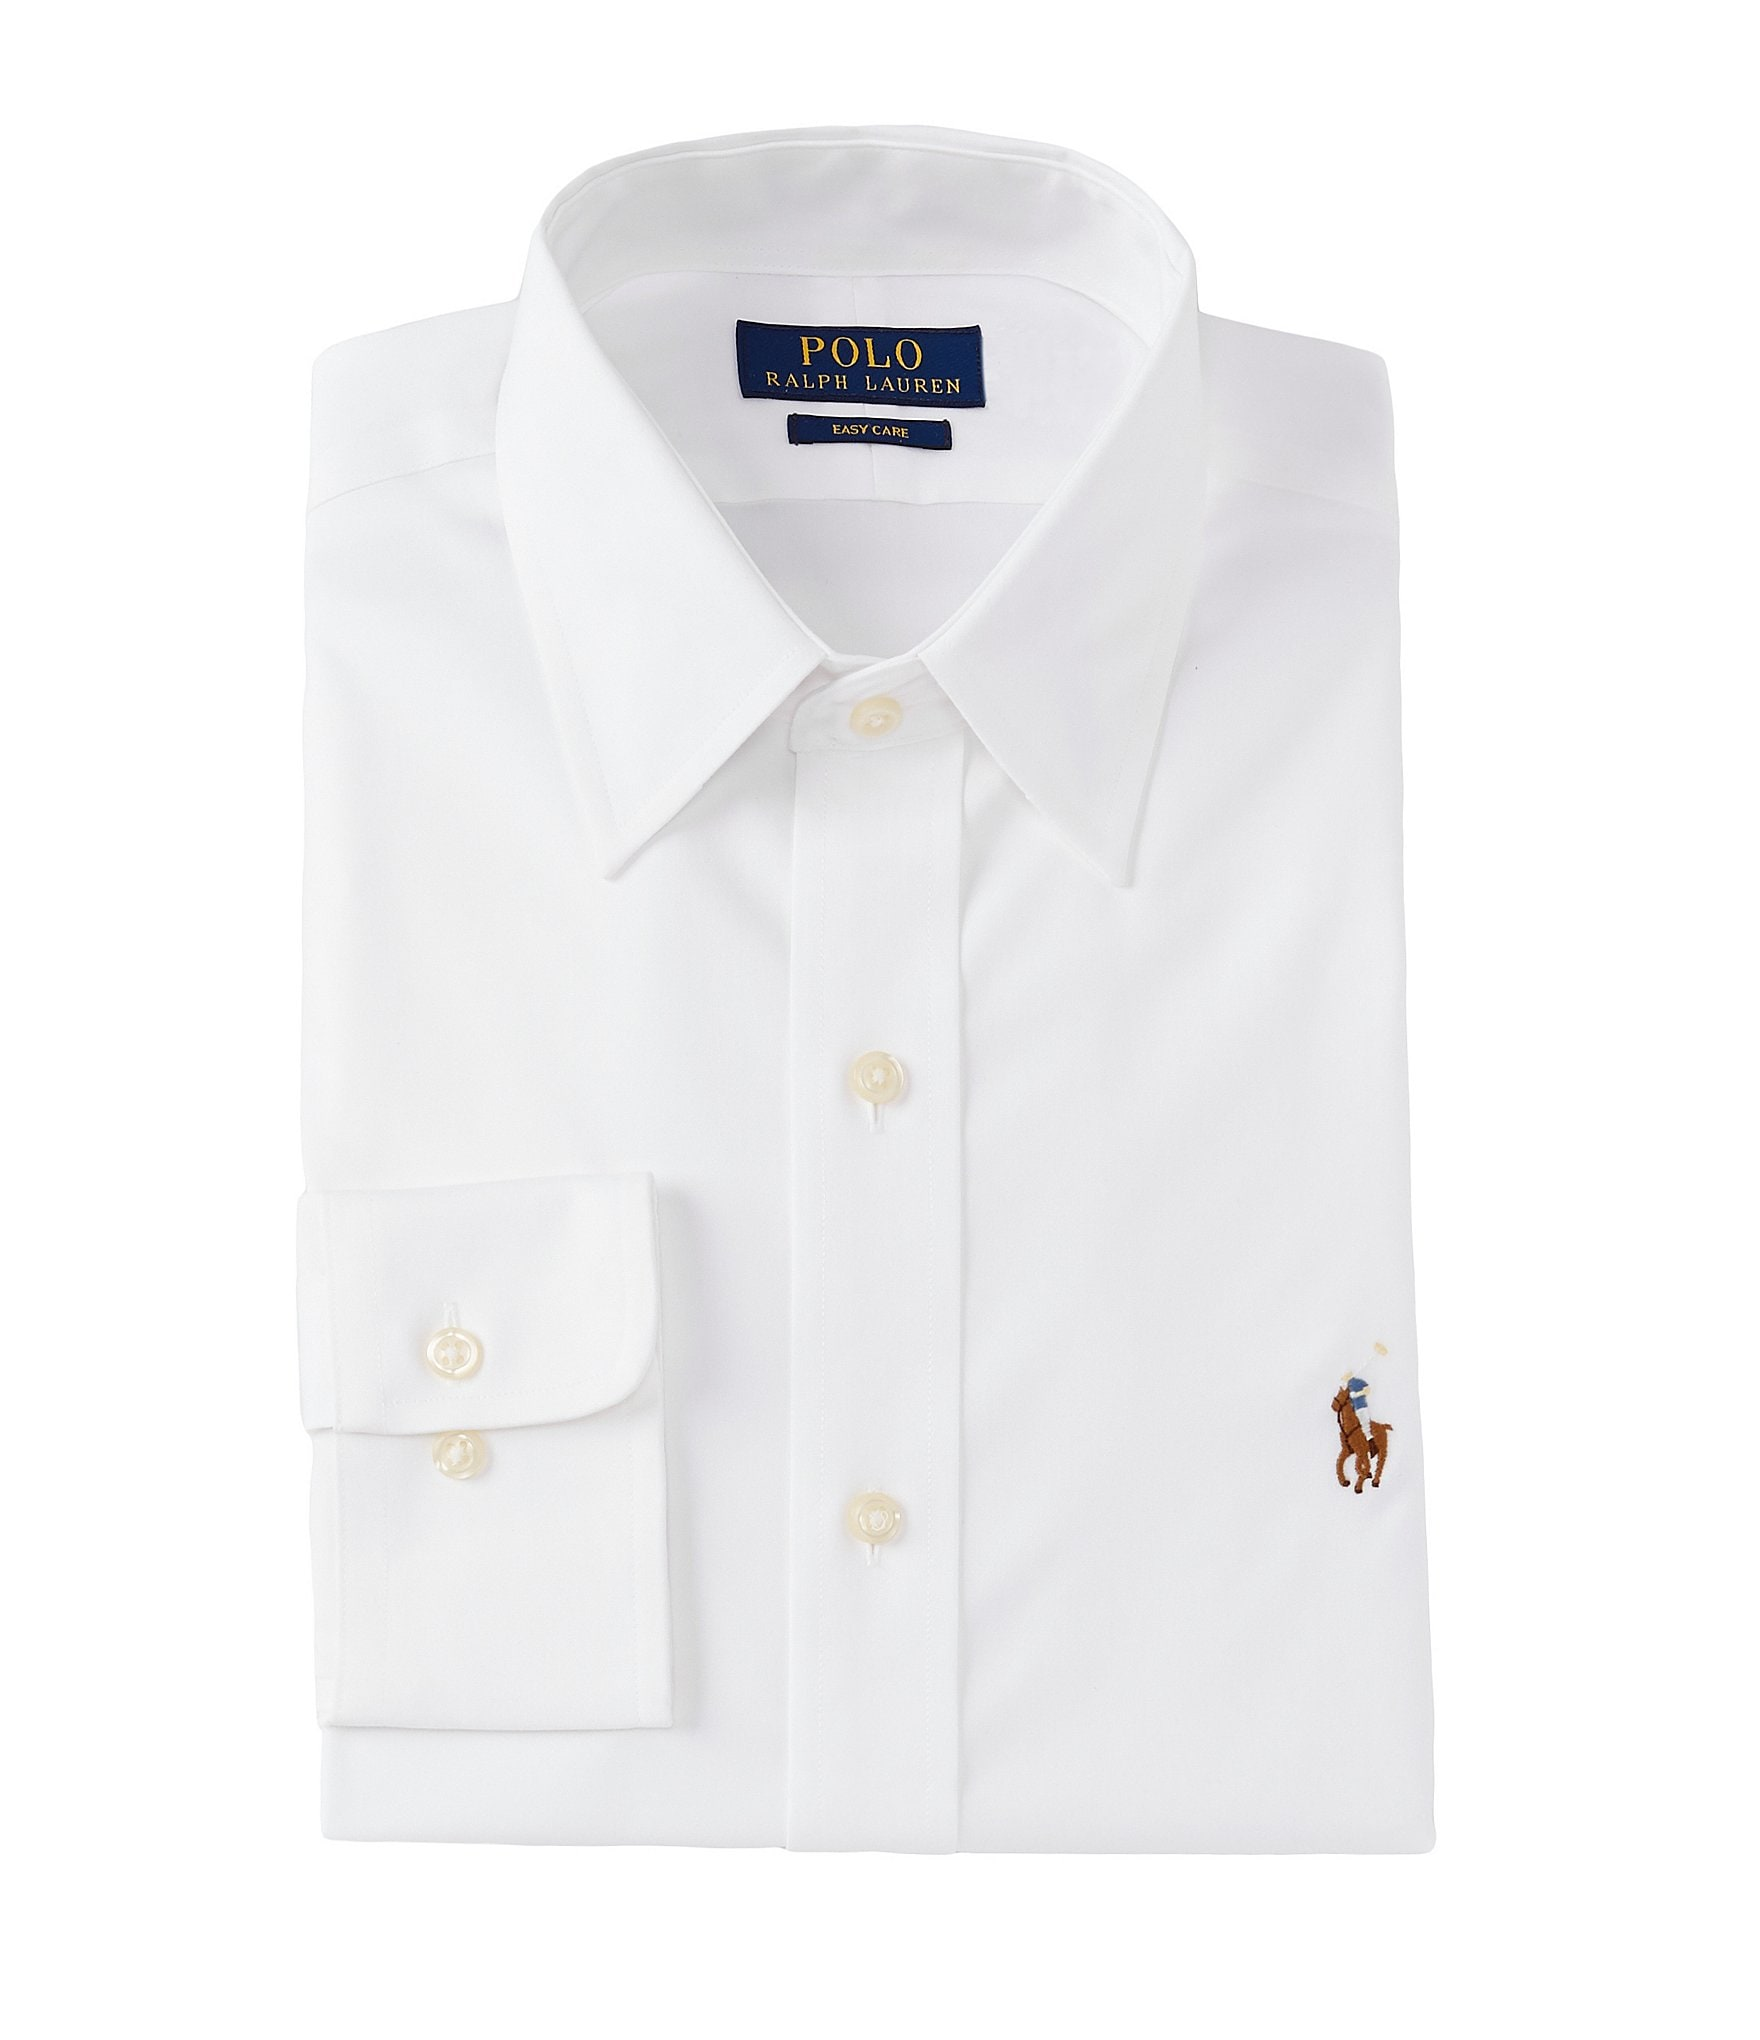 Polo Ralph Lauren Classic Fit Point Collar Solid Oxford Dress Shirt